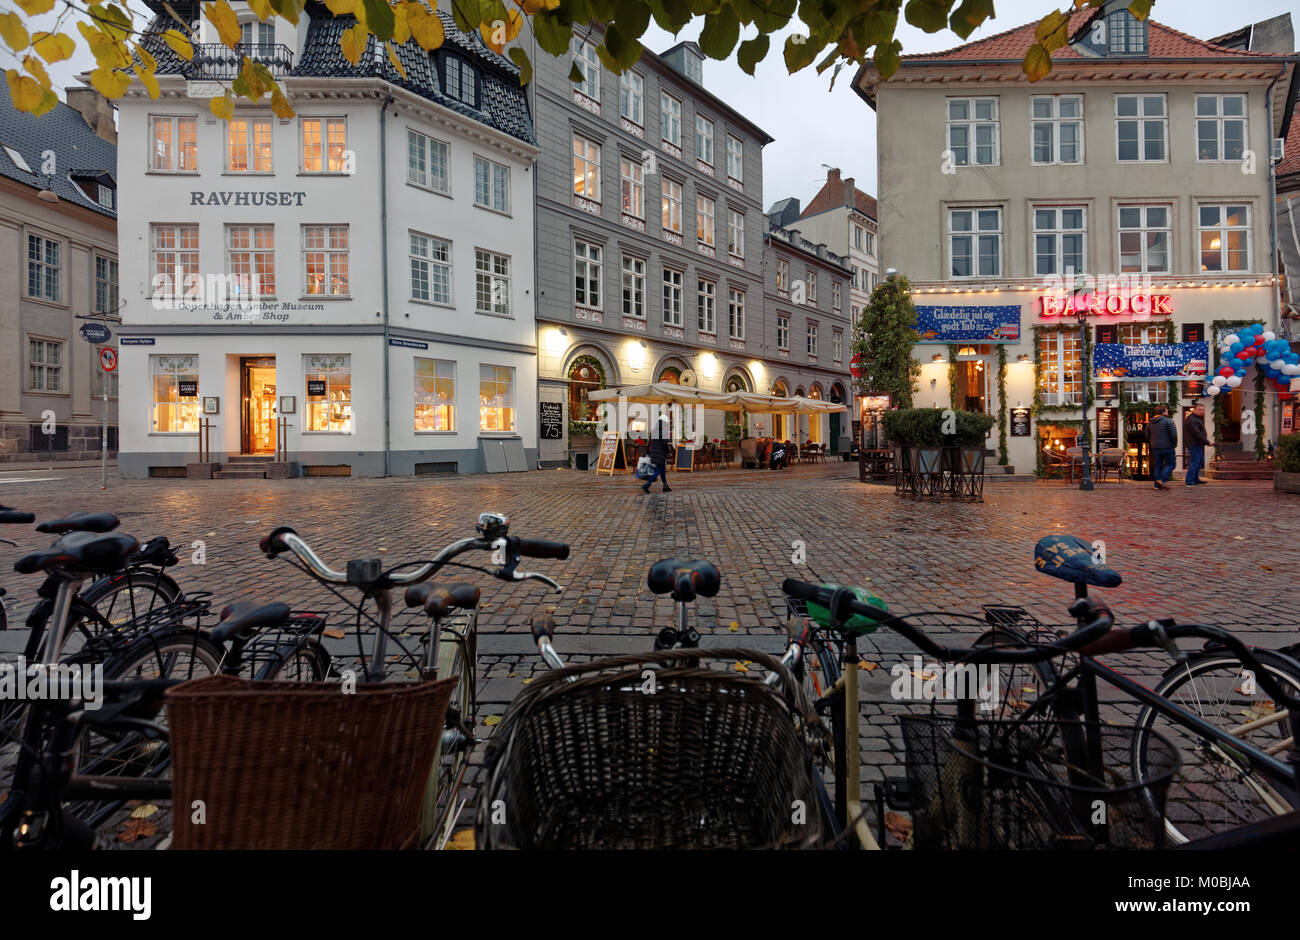 Copenhagen, Denmark - November 6, 2016: Bicycles and people on Kongens Nytorv square. The largest square of the - Stock Image